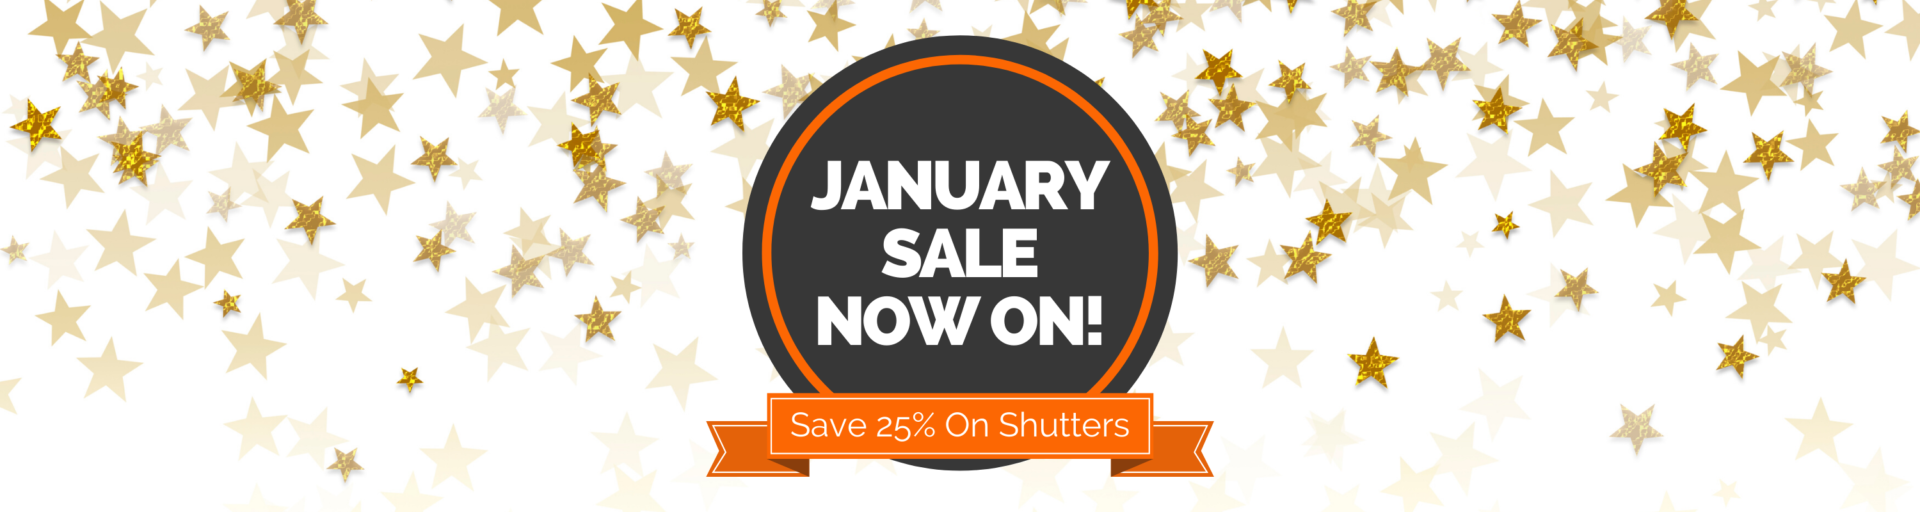 January Sale Now On At Chichester Shutters